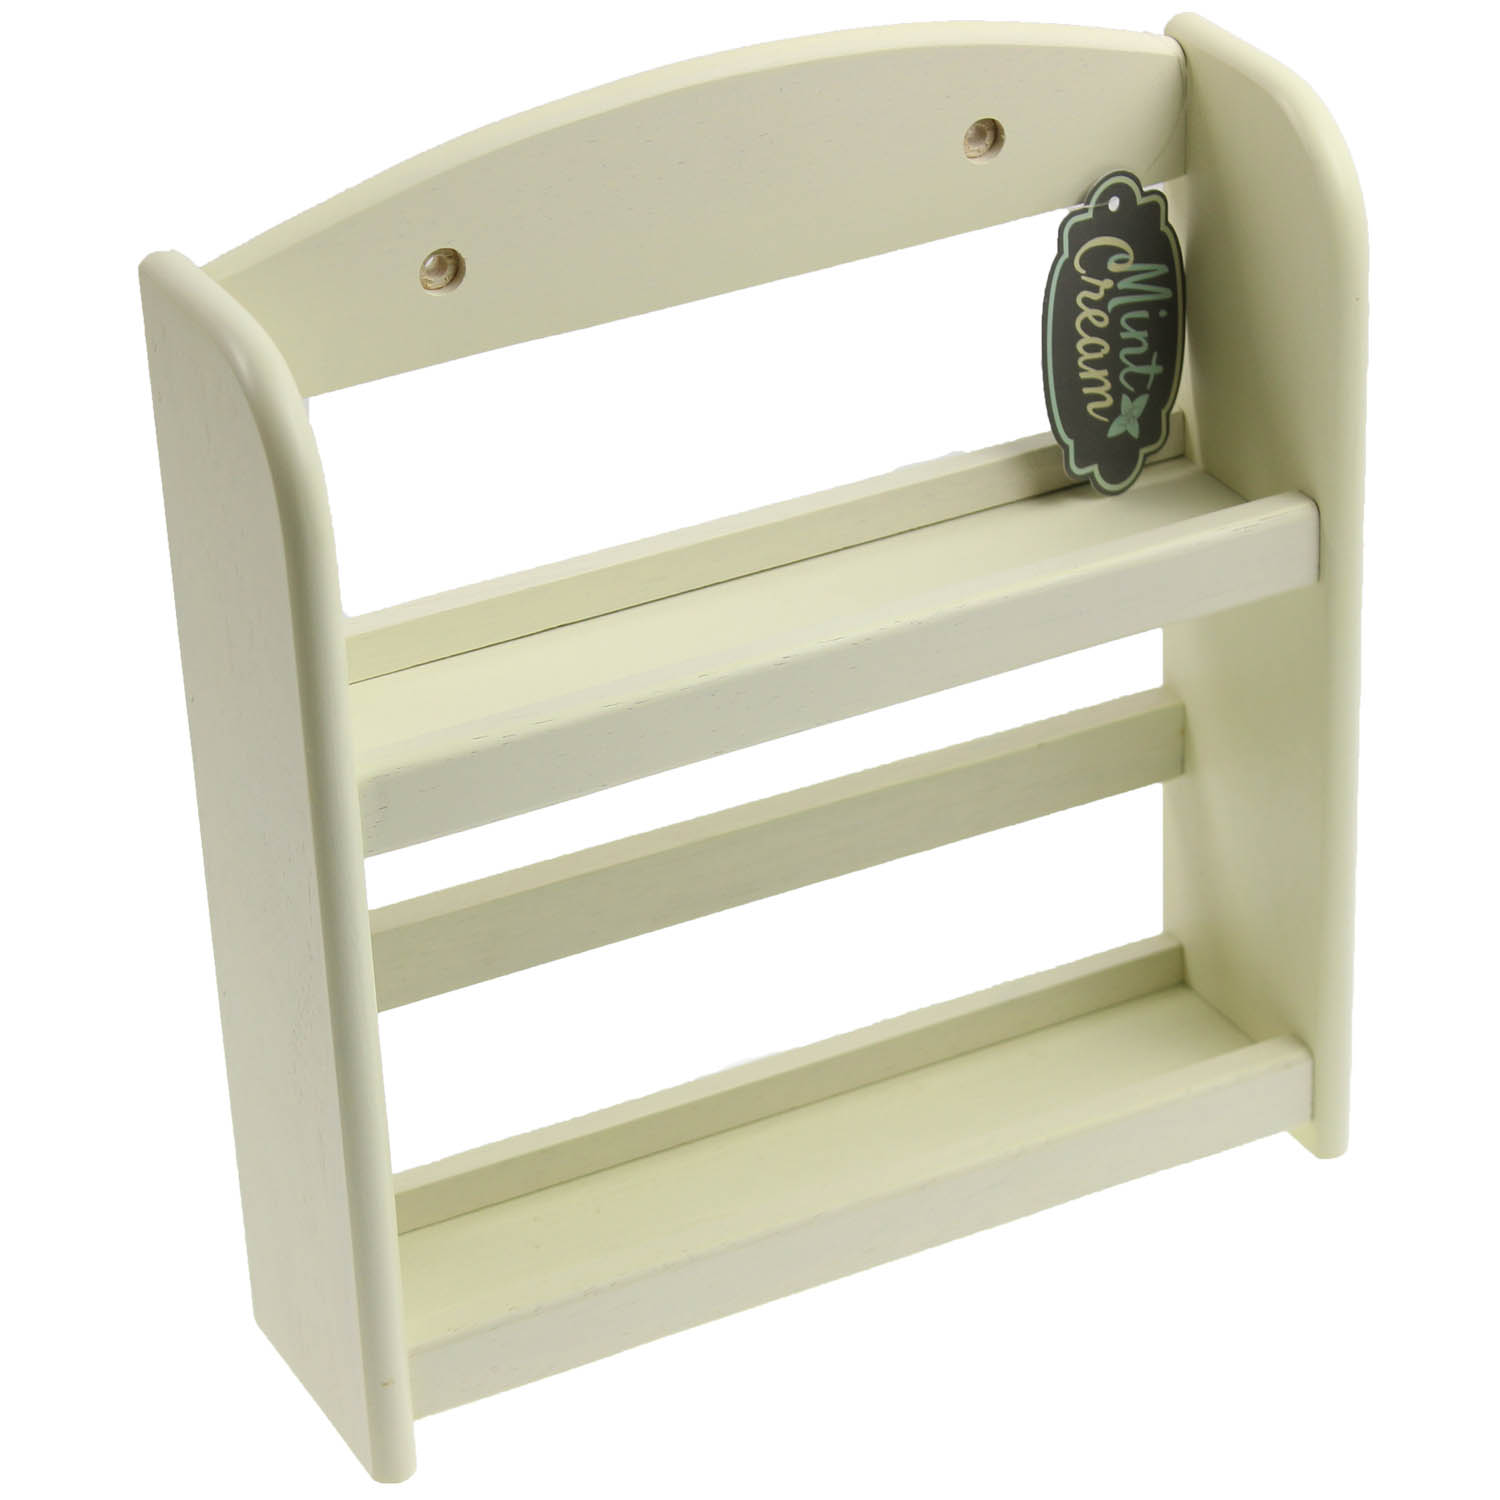 Woodworking Plans For Kitchen Spice Rack: 2 Tier Wood Cream Kitchen Spice Rack Shelf Storage